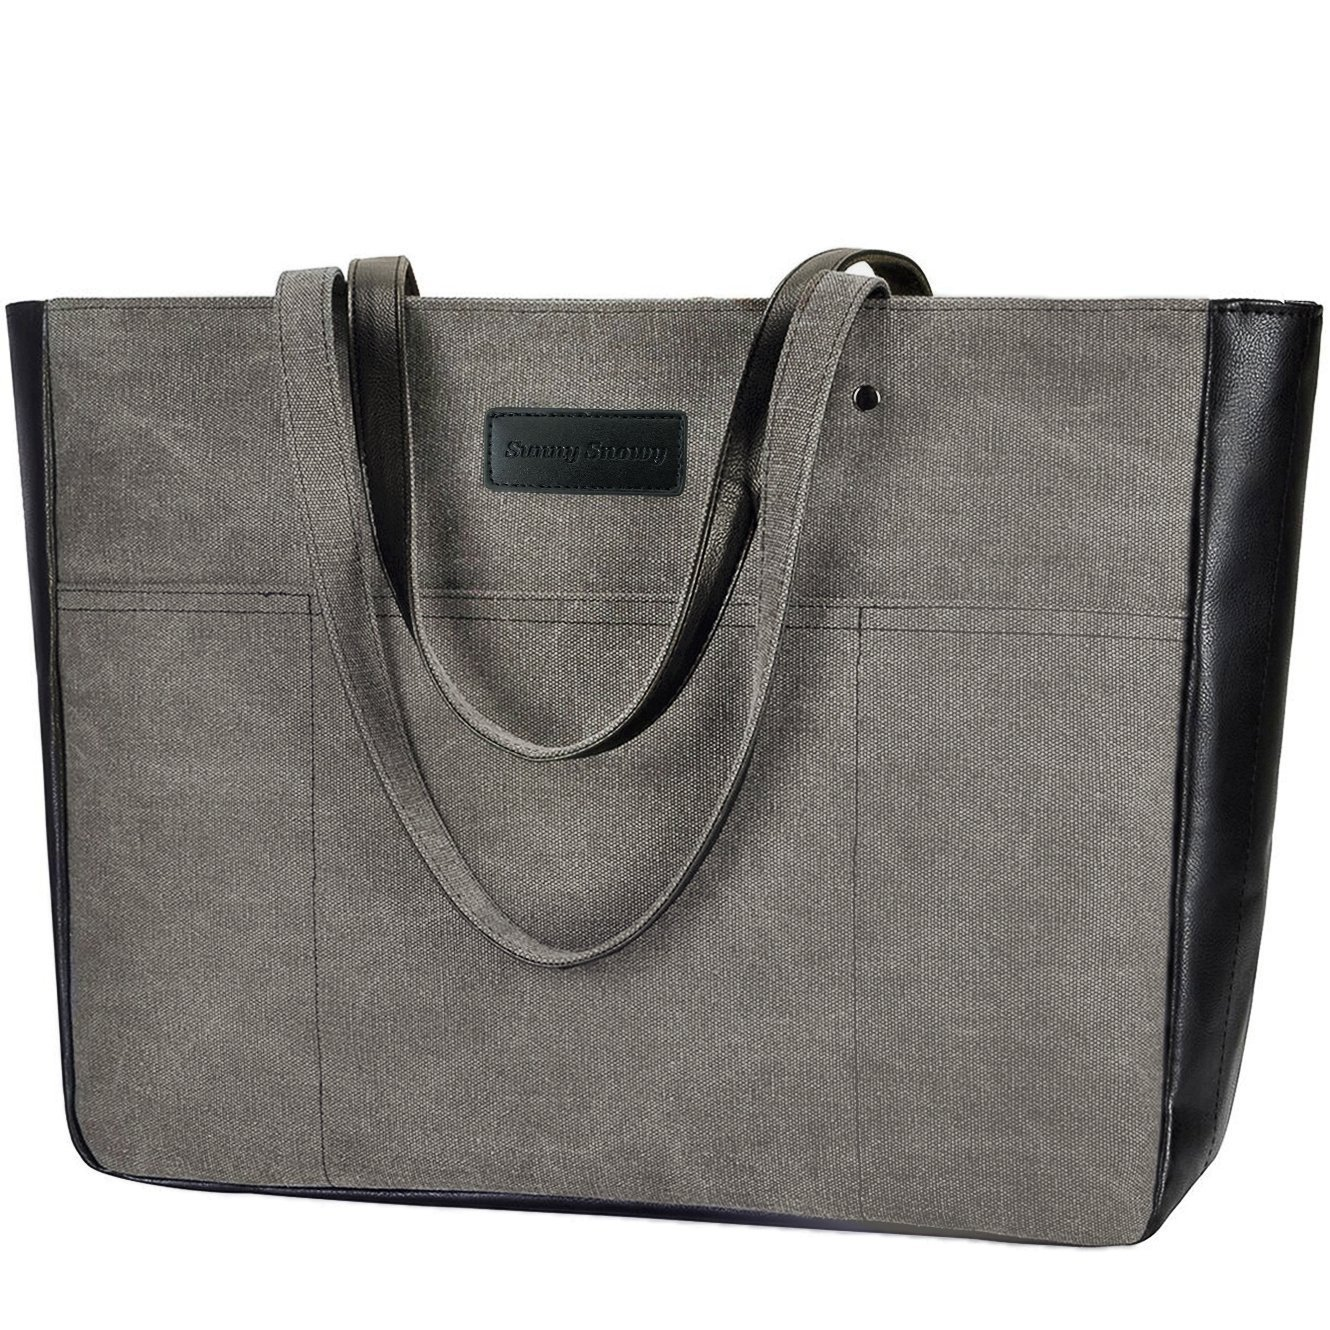 Laptop Tote Bag, Women 15-15.6 Inch Laptop Bag for Work, Lightweight Canvas Tote Bag Office Briefcase SS8031black